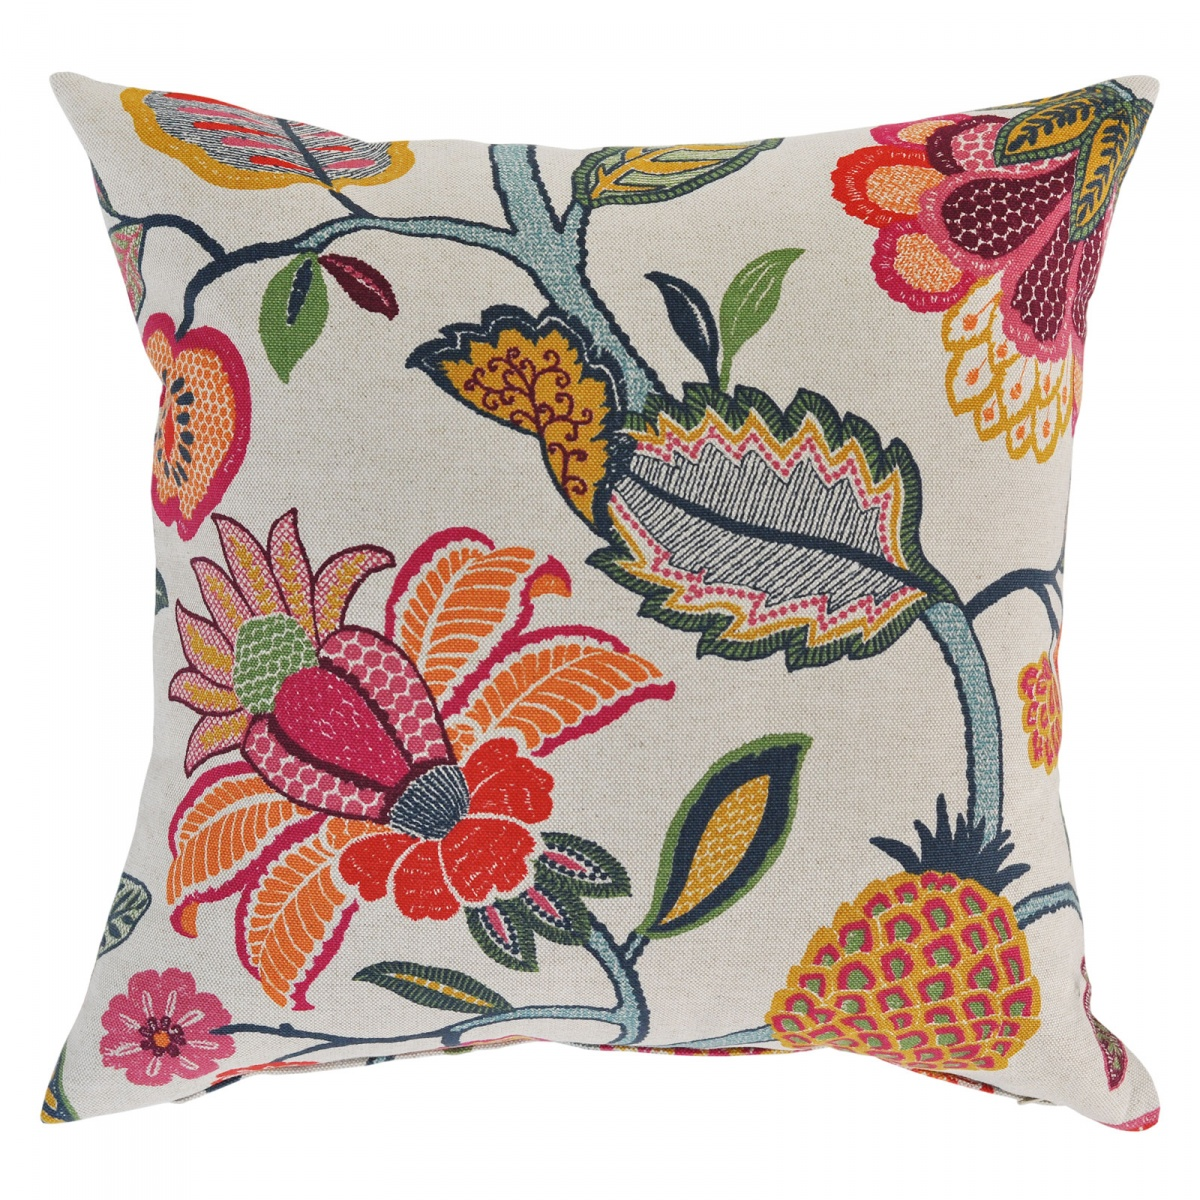 Timeless Grace Parchment Cushion - 55x55cm